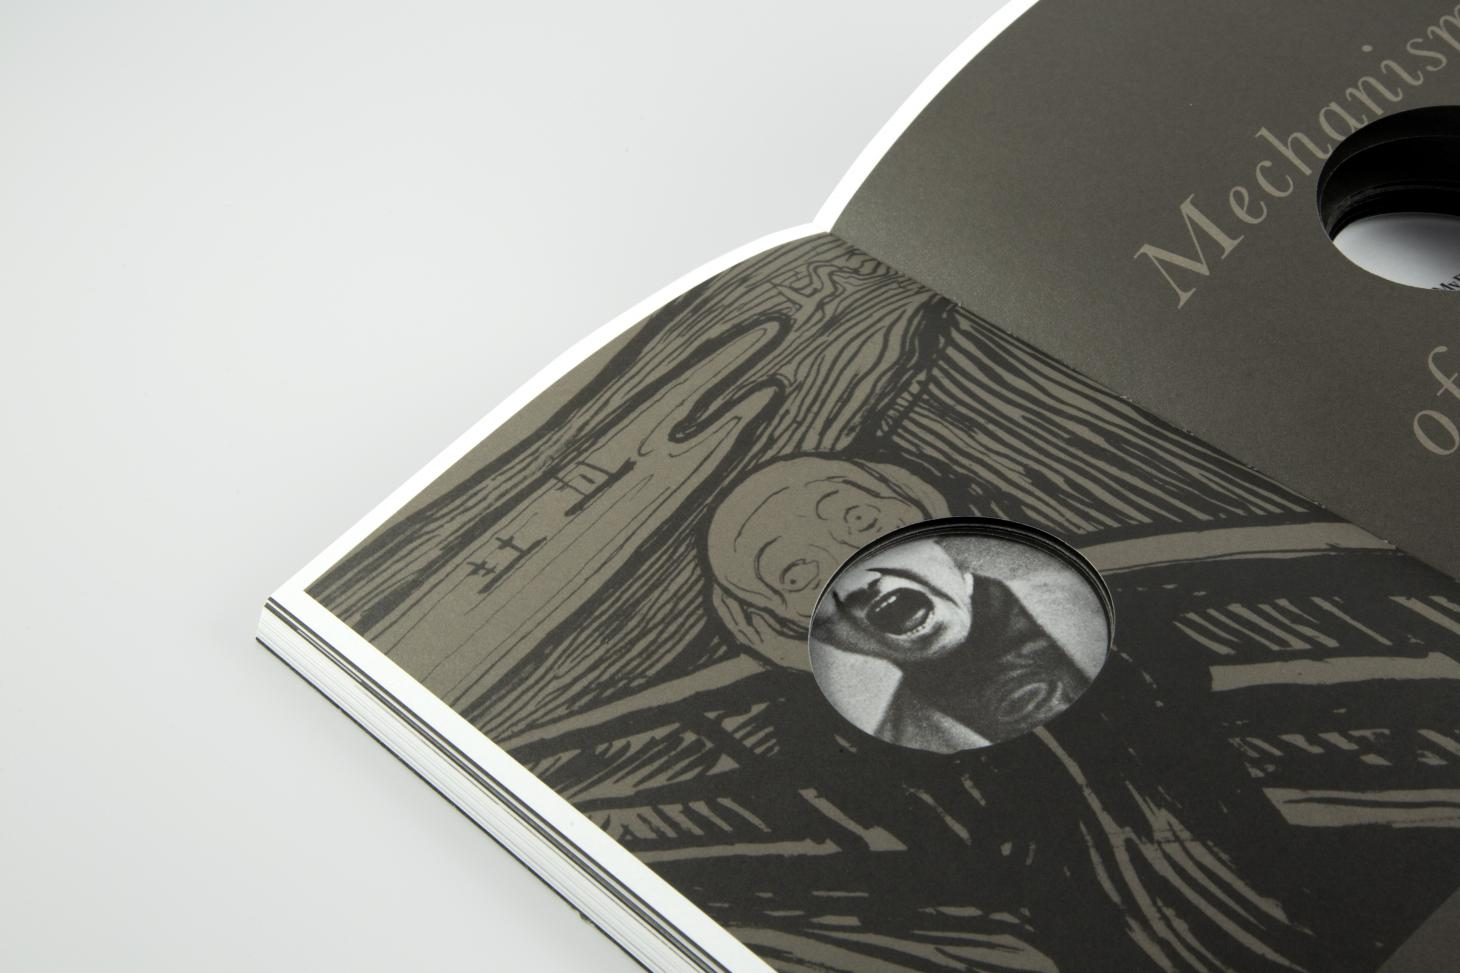 Spread from Fragile Self, detail view of innovative book design